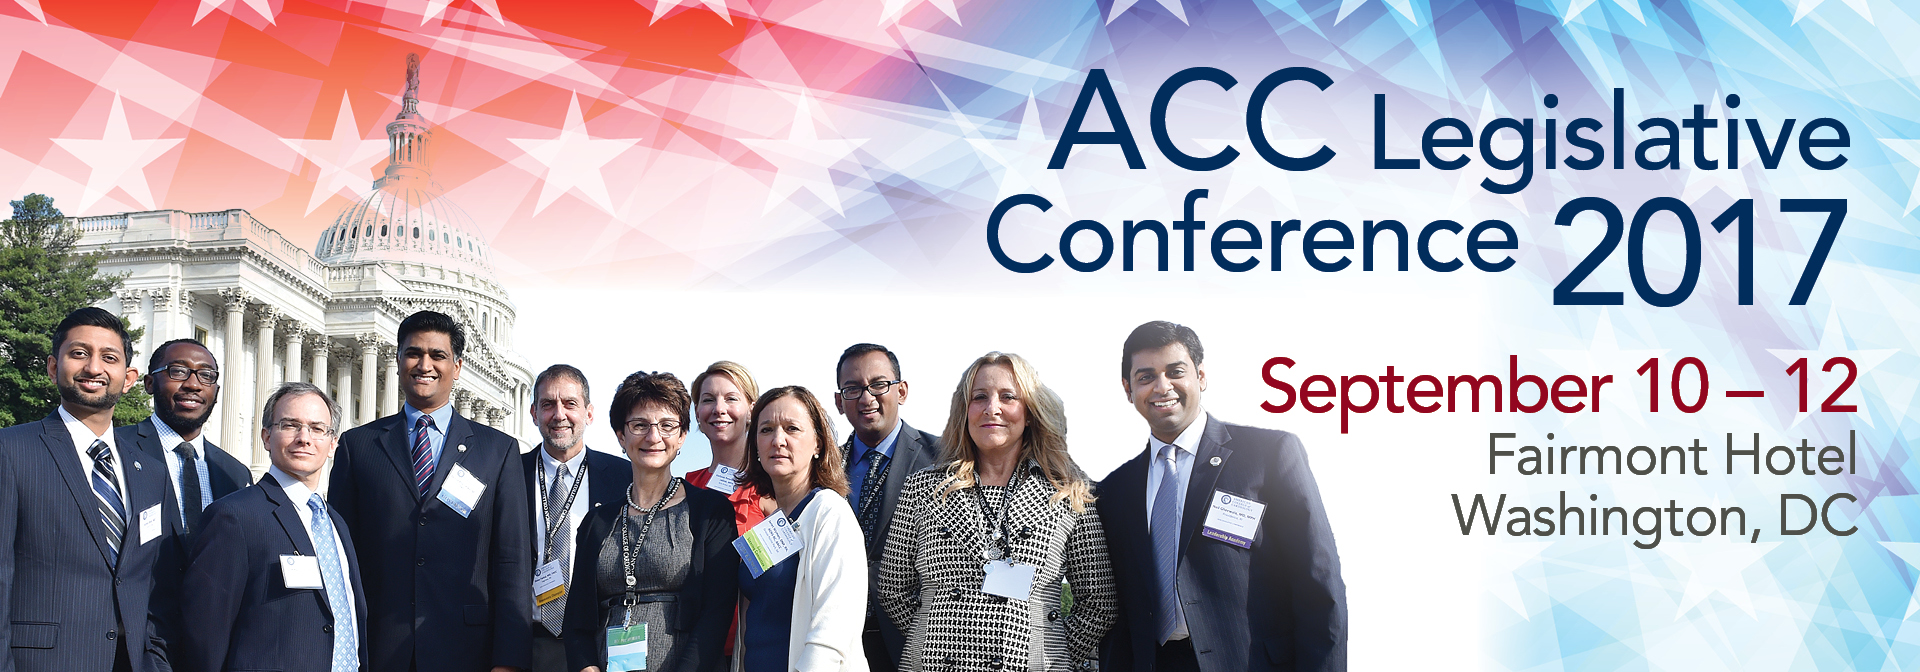 2017 American College of Cardiology Legislative Conference